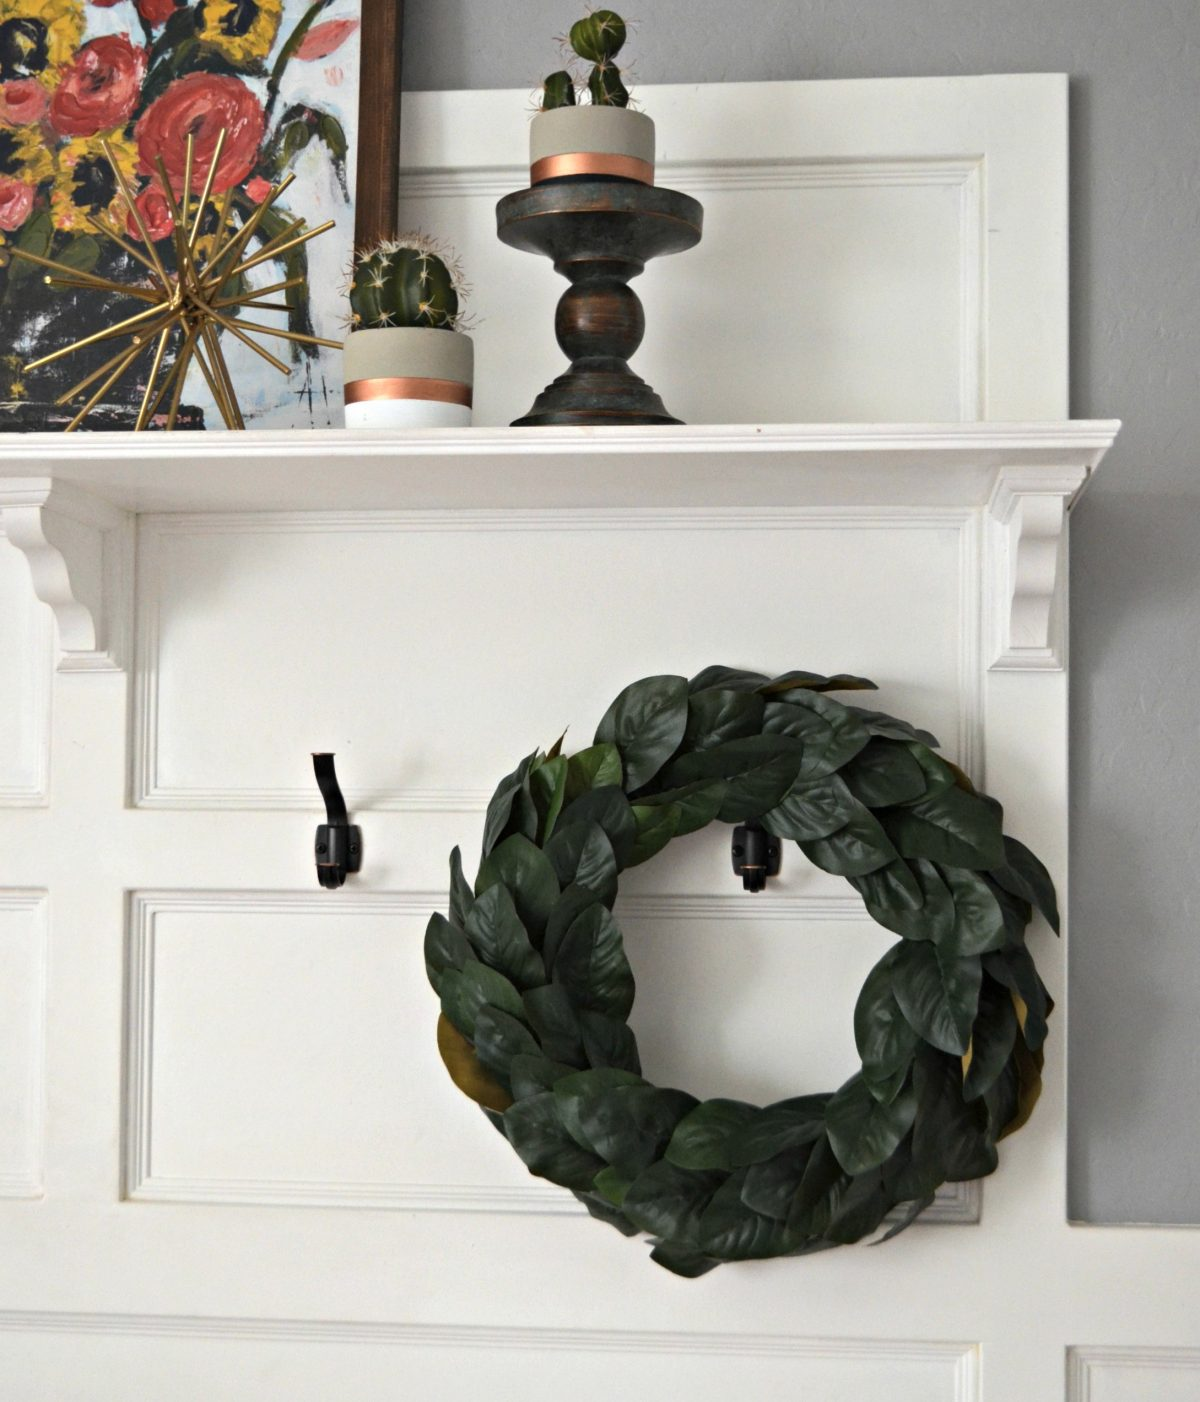 Magnolia wreath hanging on the wall